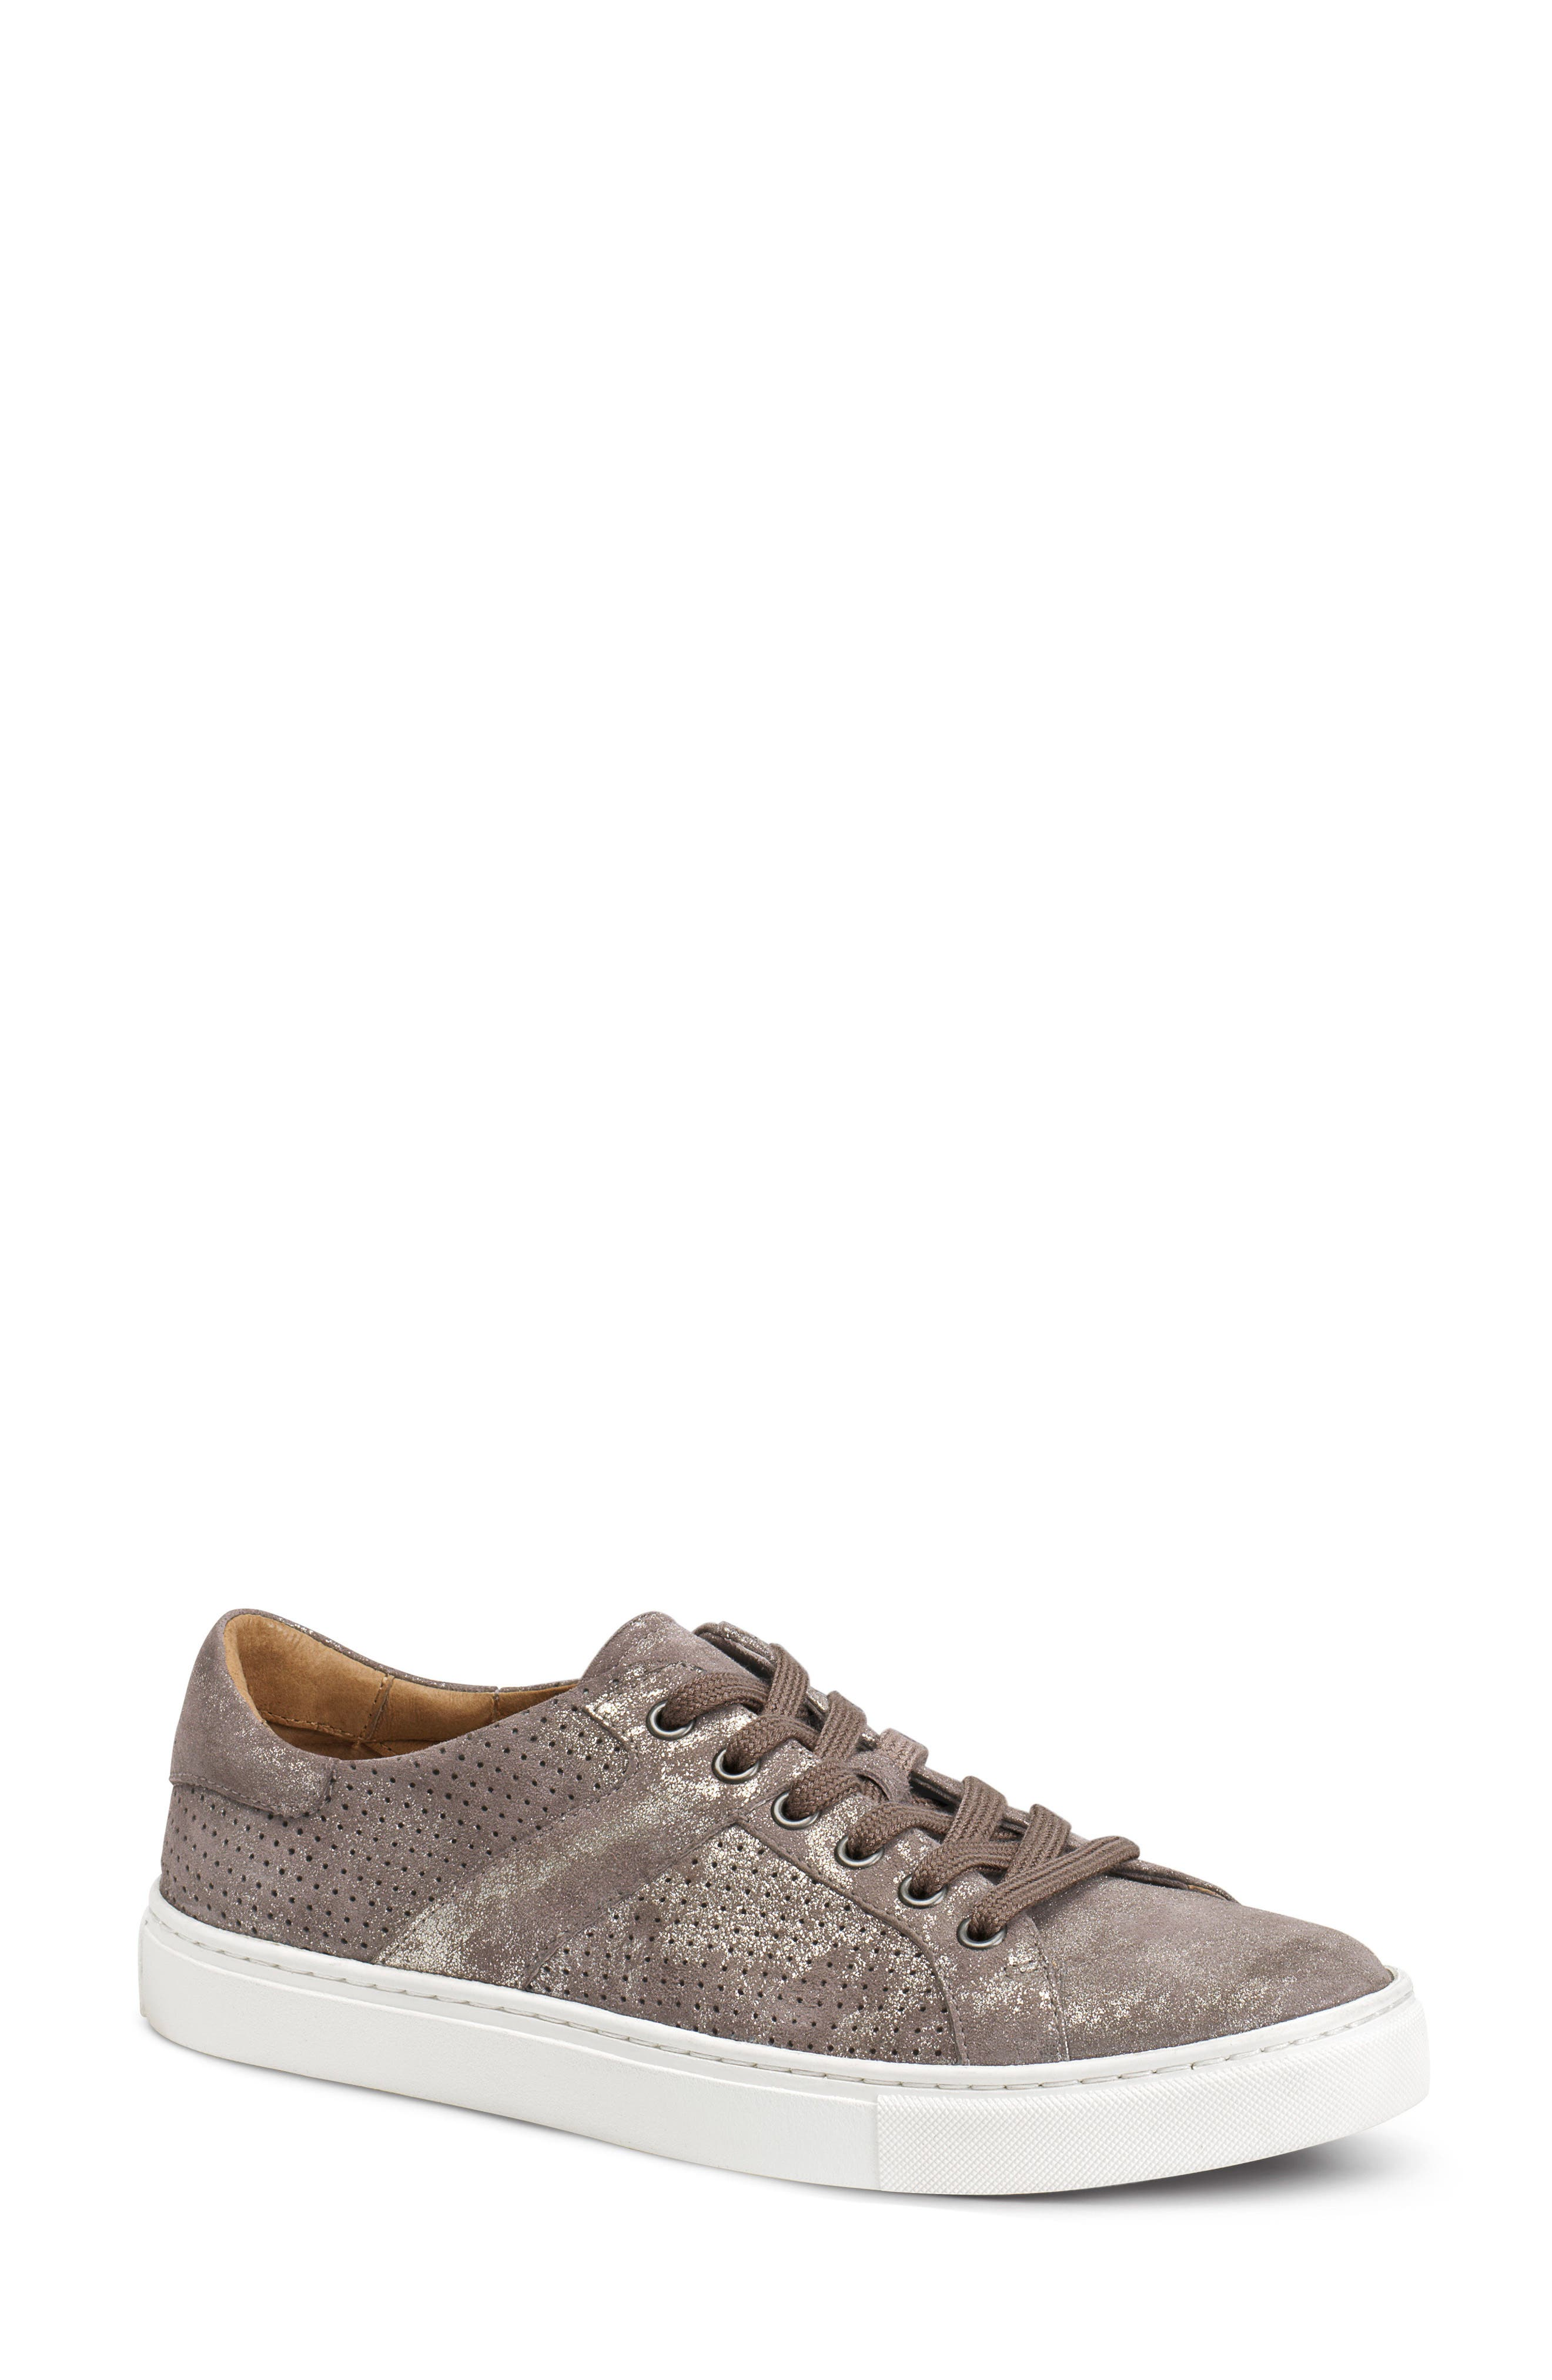 Lindsey Sneaker,                         Main,                         color, Pewter Suede